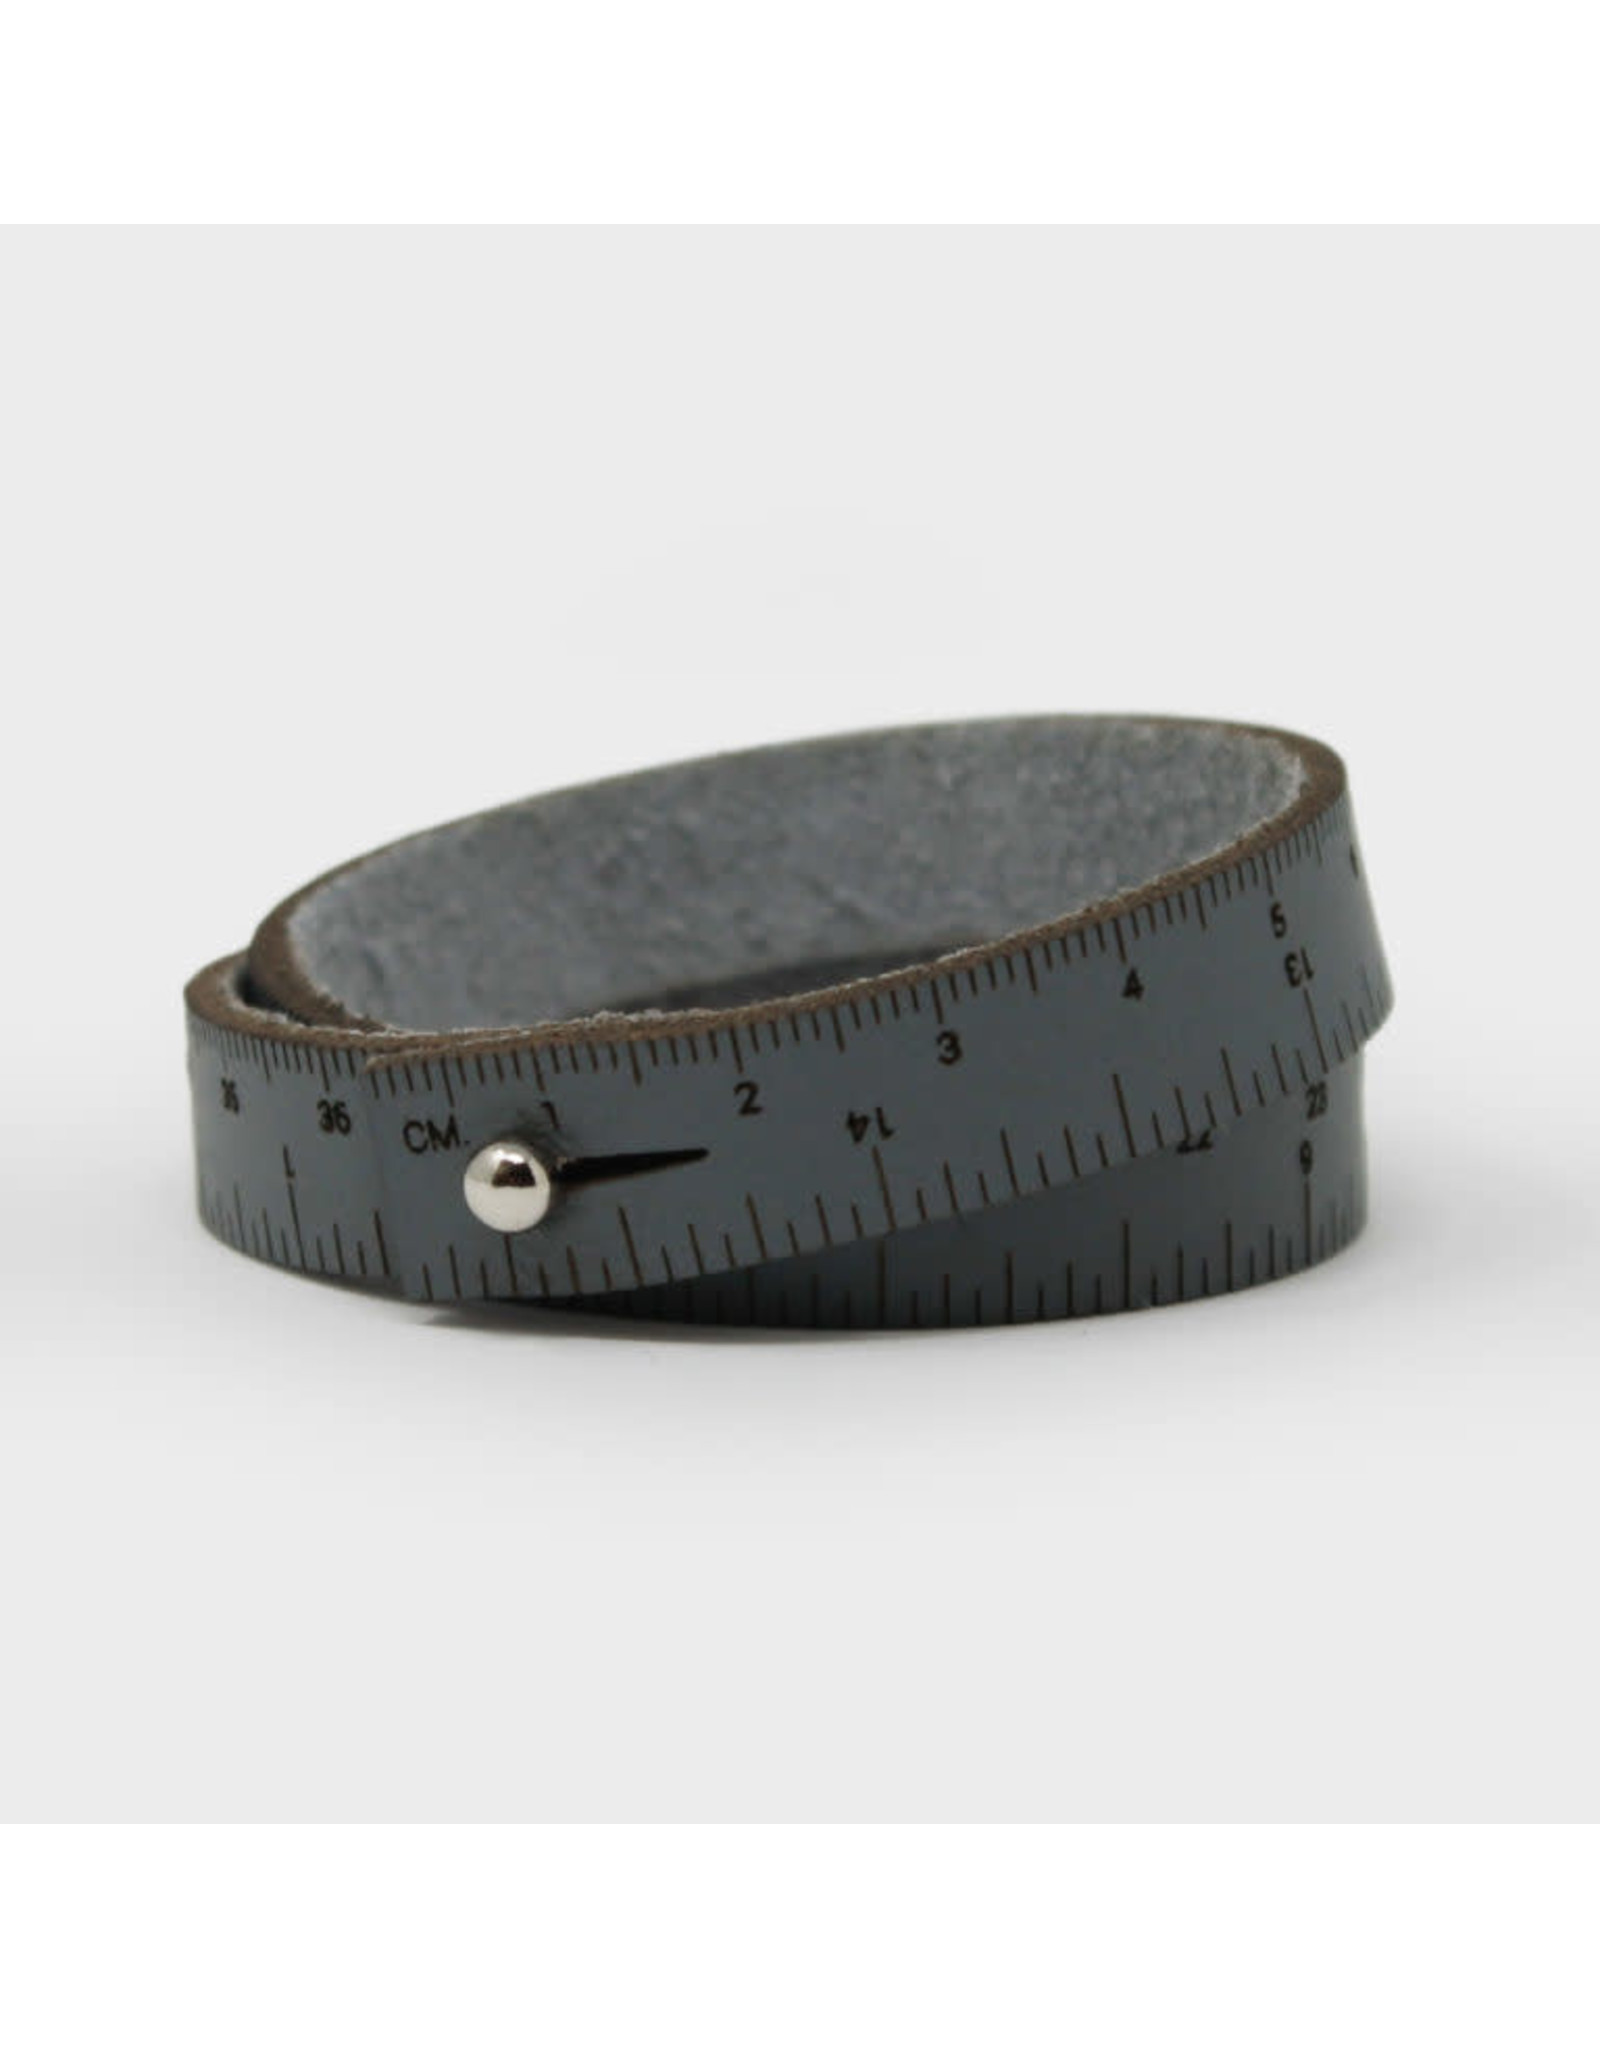 Wrist Ruler - GREY - 17 inches